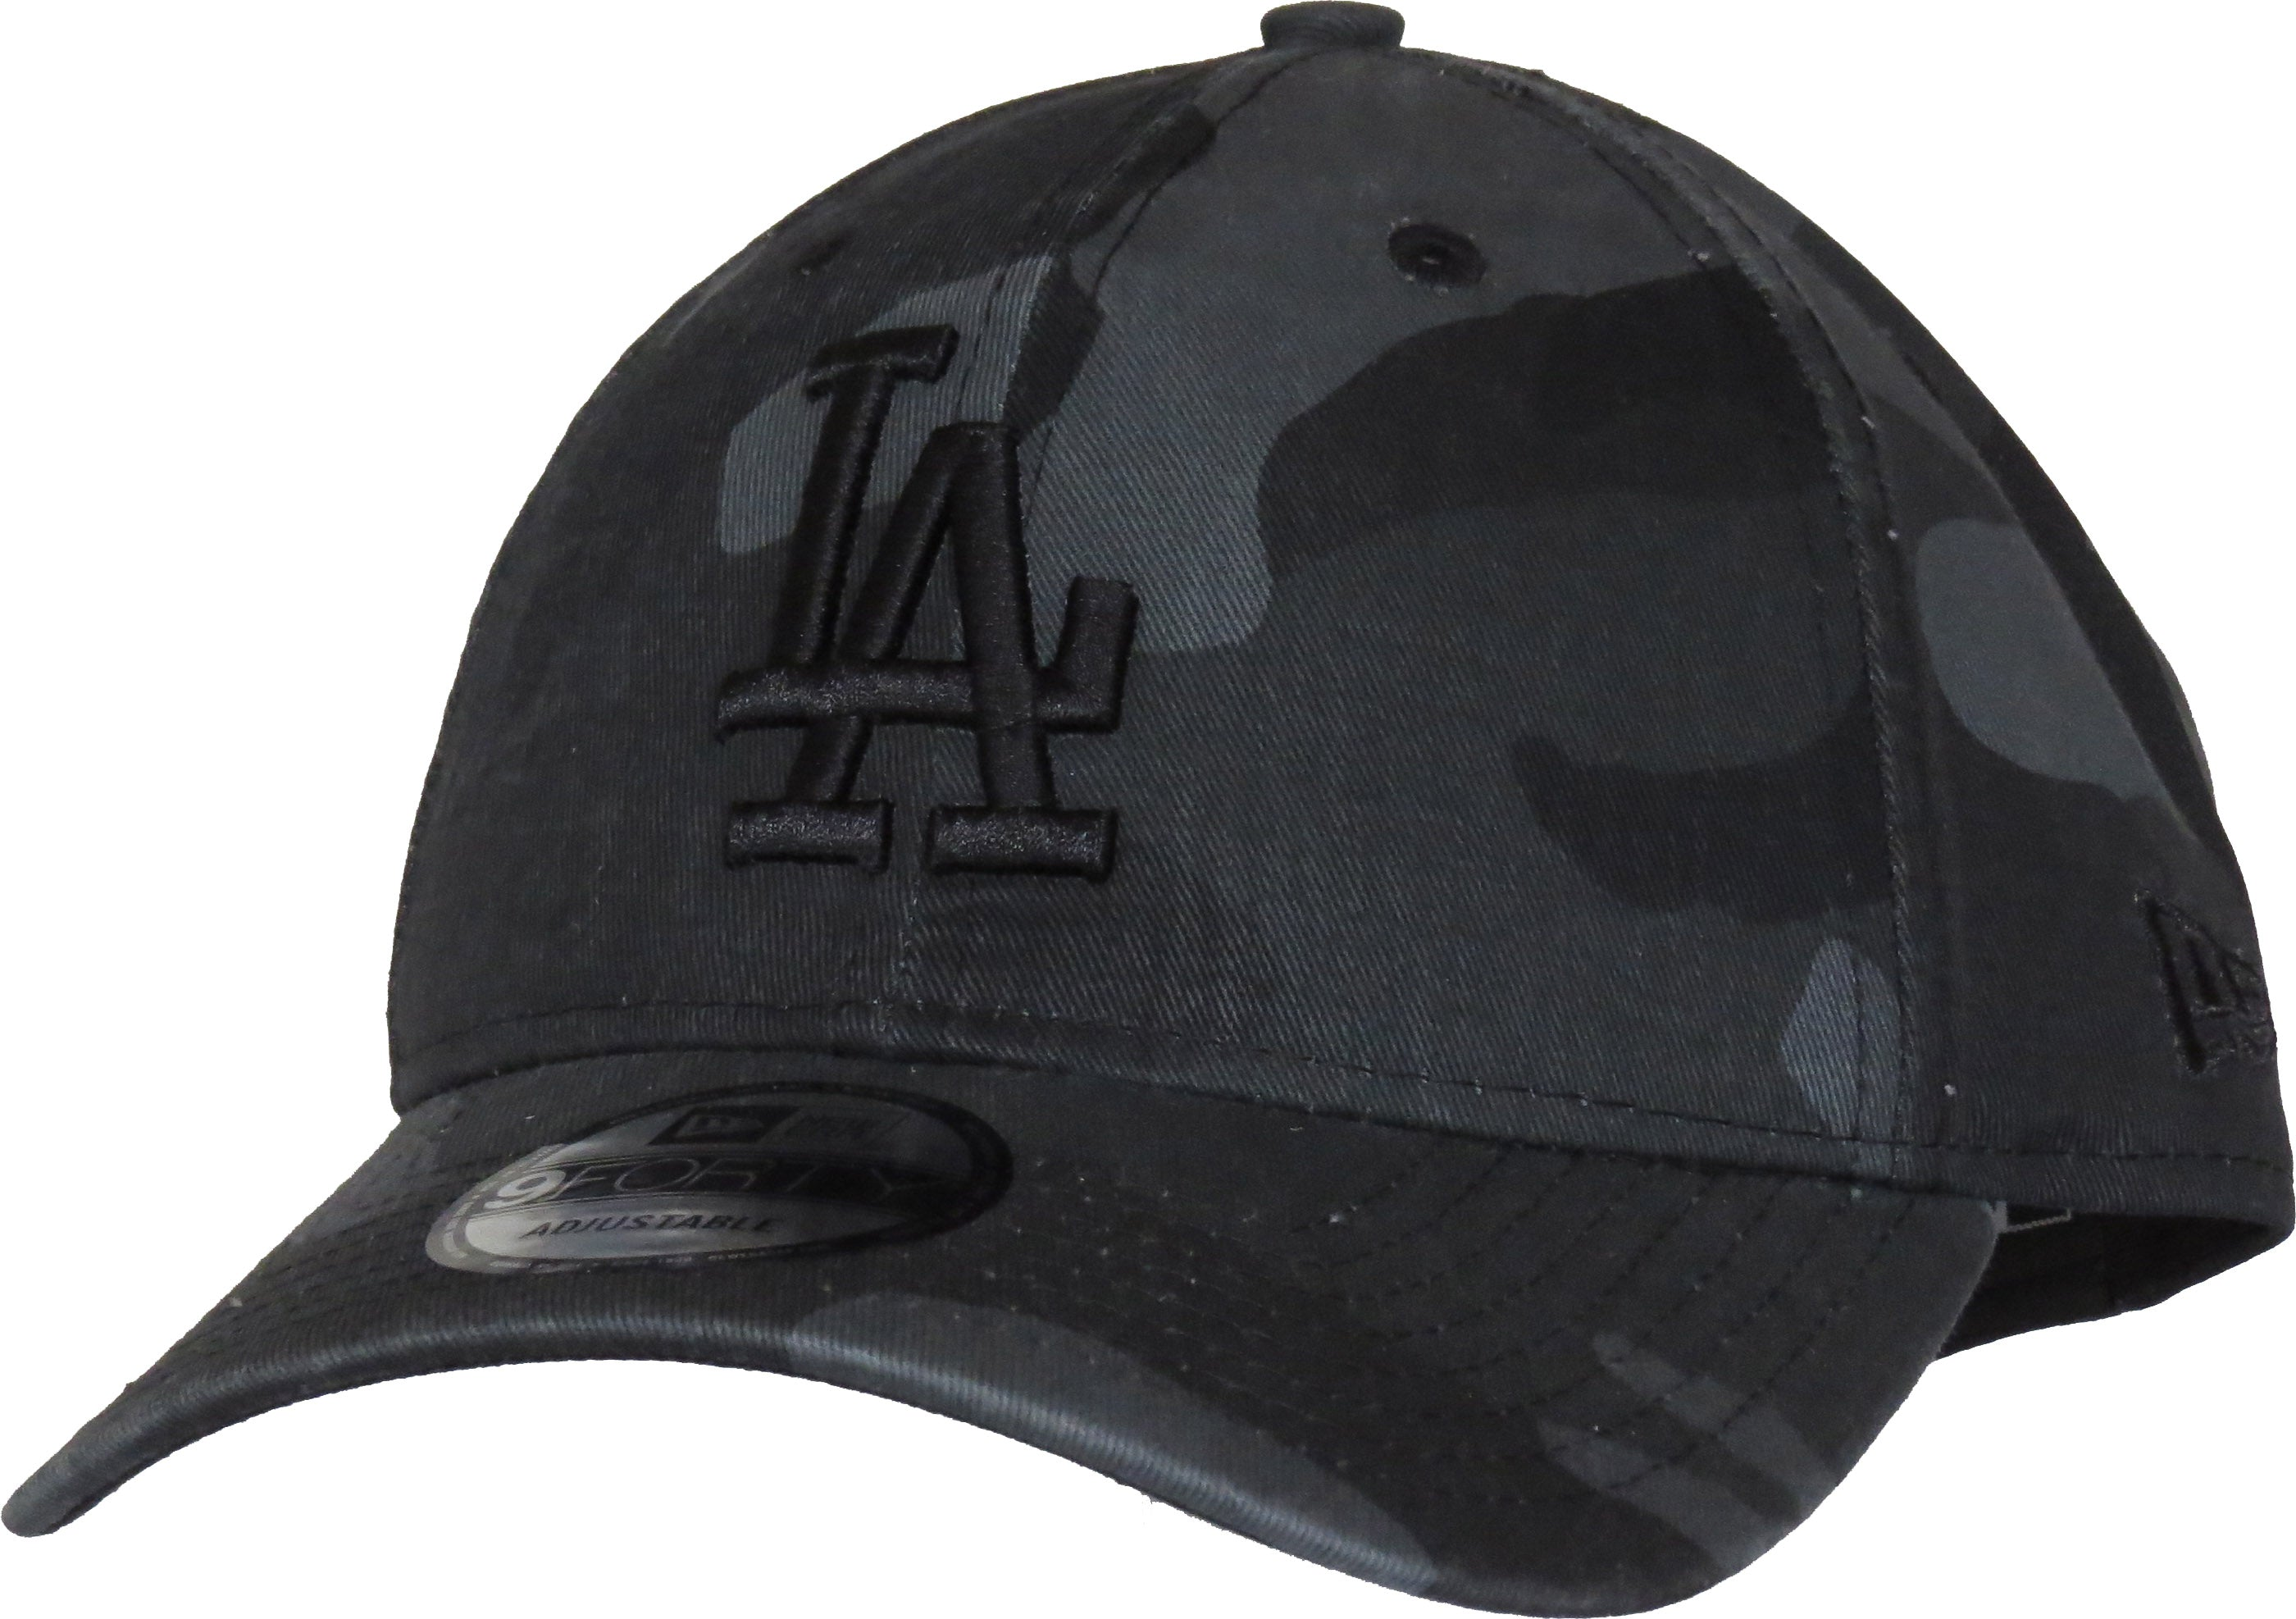 Los Angeles Dodgers New Era 940 Washed Camo Baseball Cap - pumpheadgear 48f421c3654e